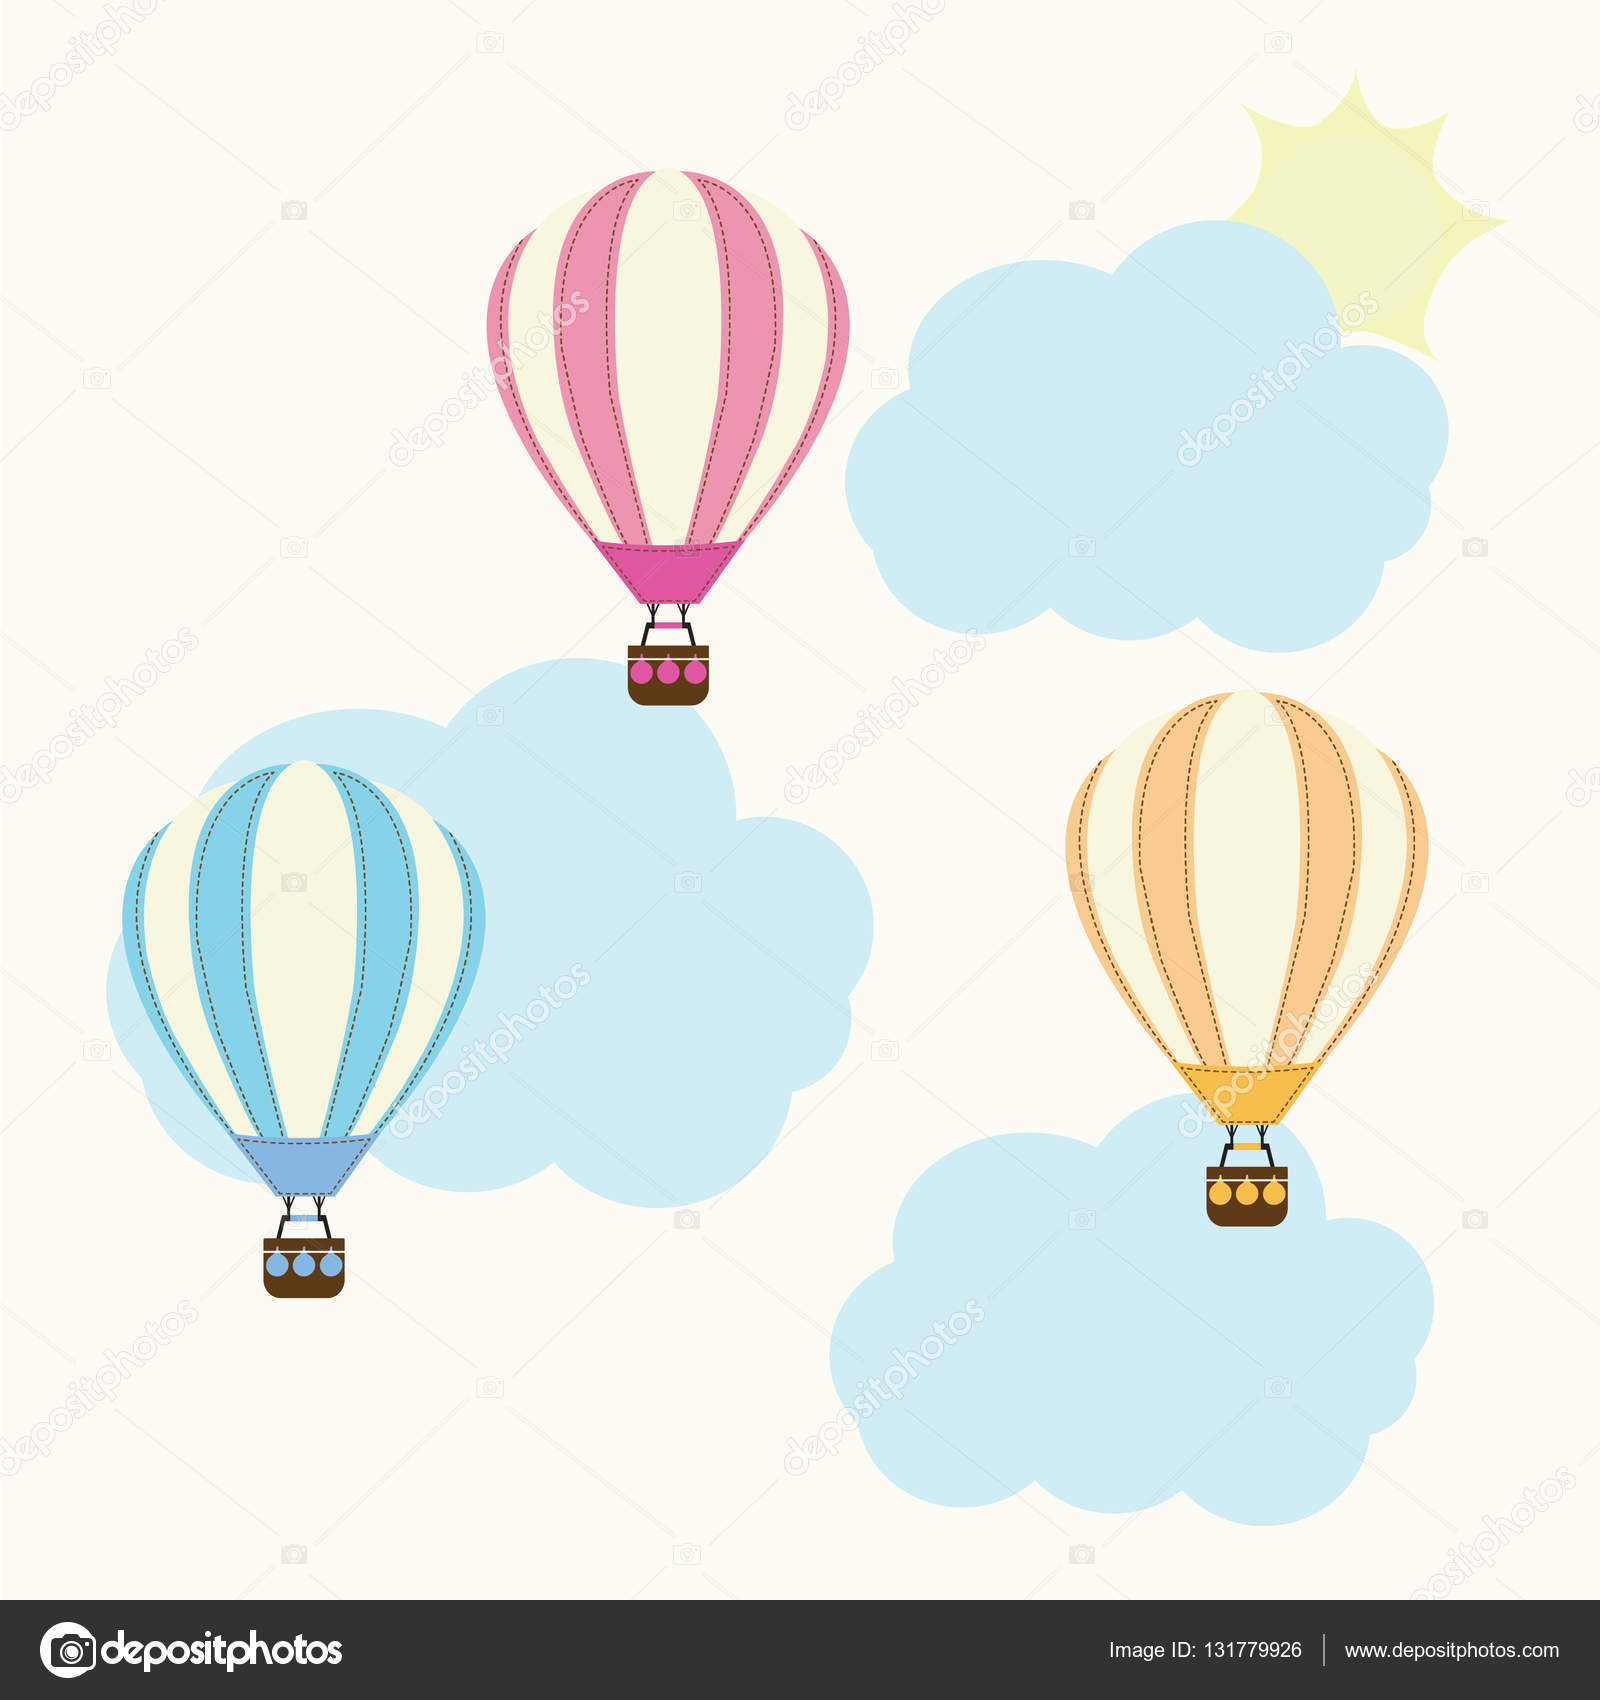 Baby Shower illustration with cute hot air balloon on sky